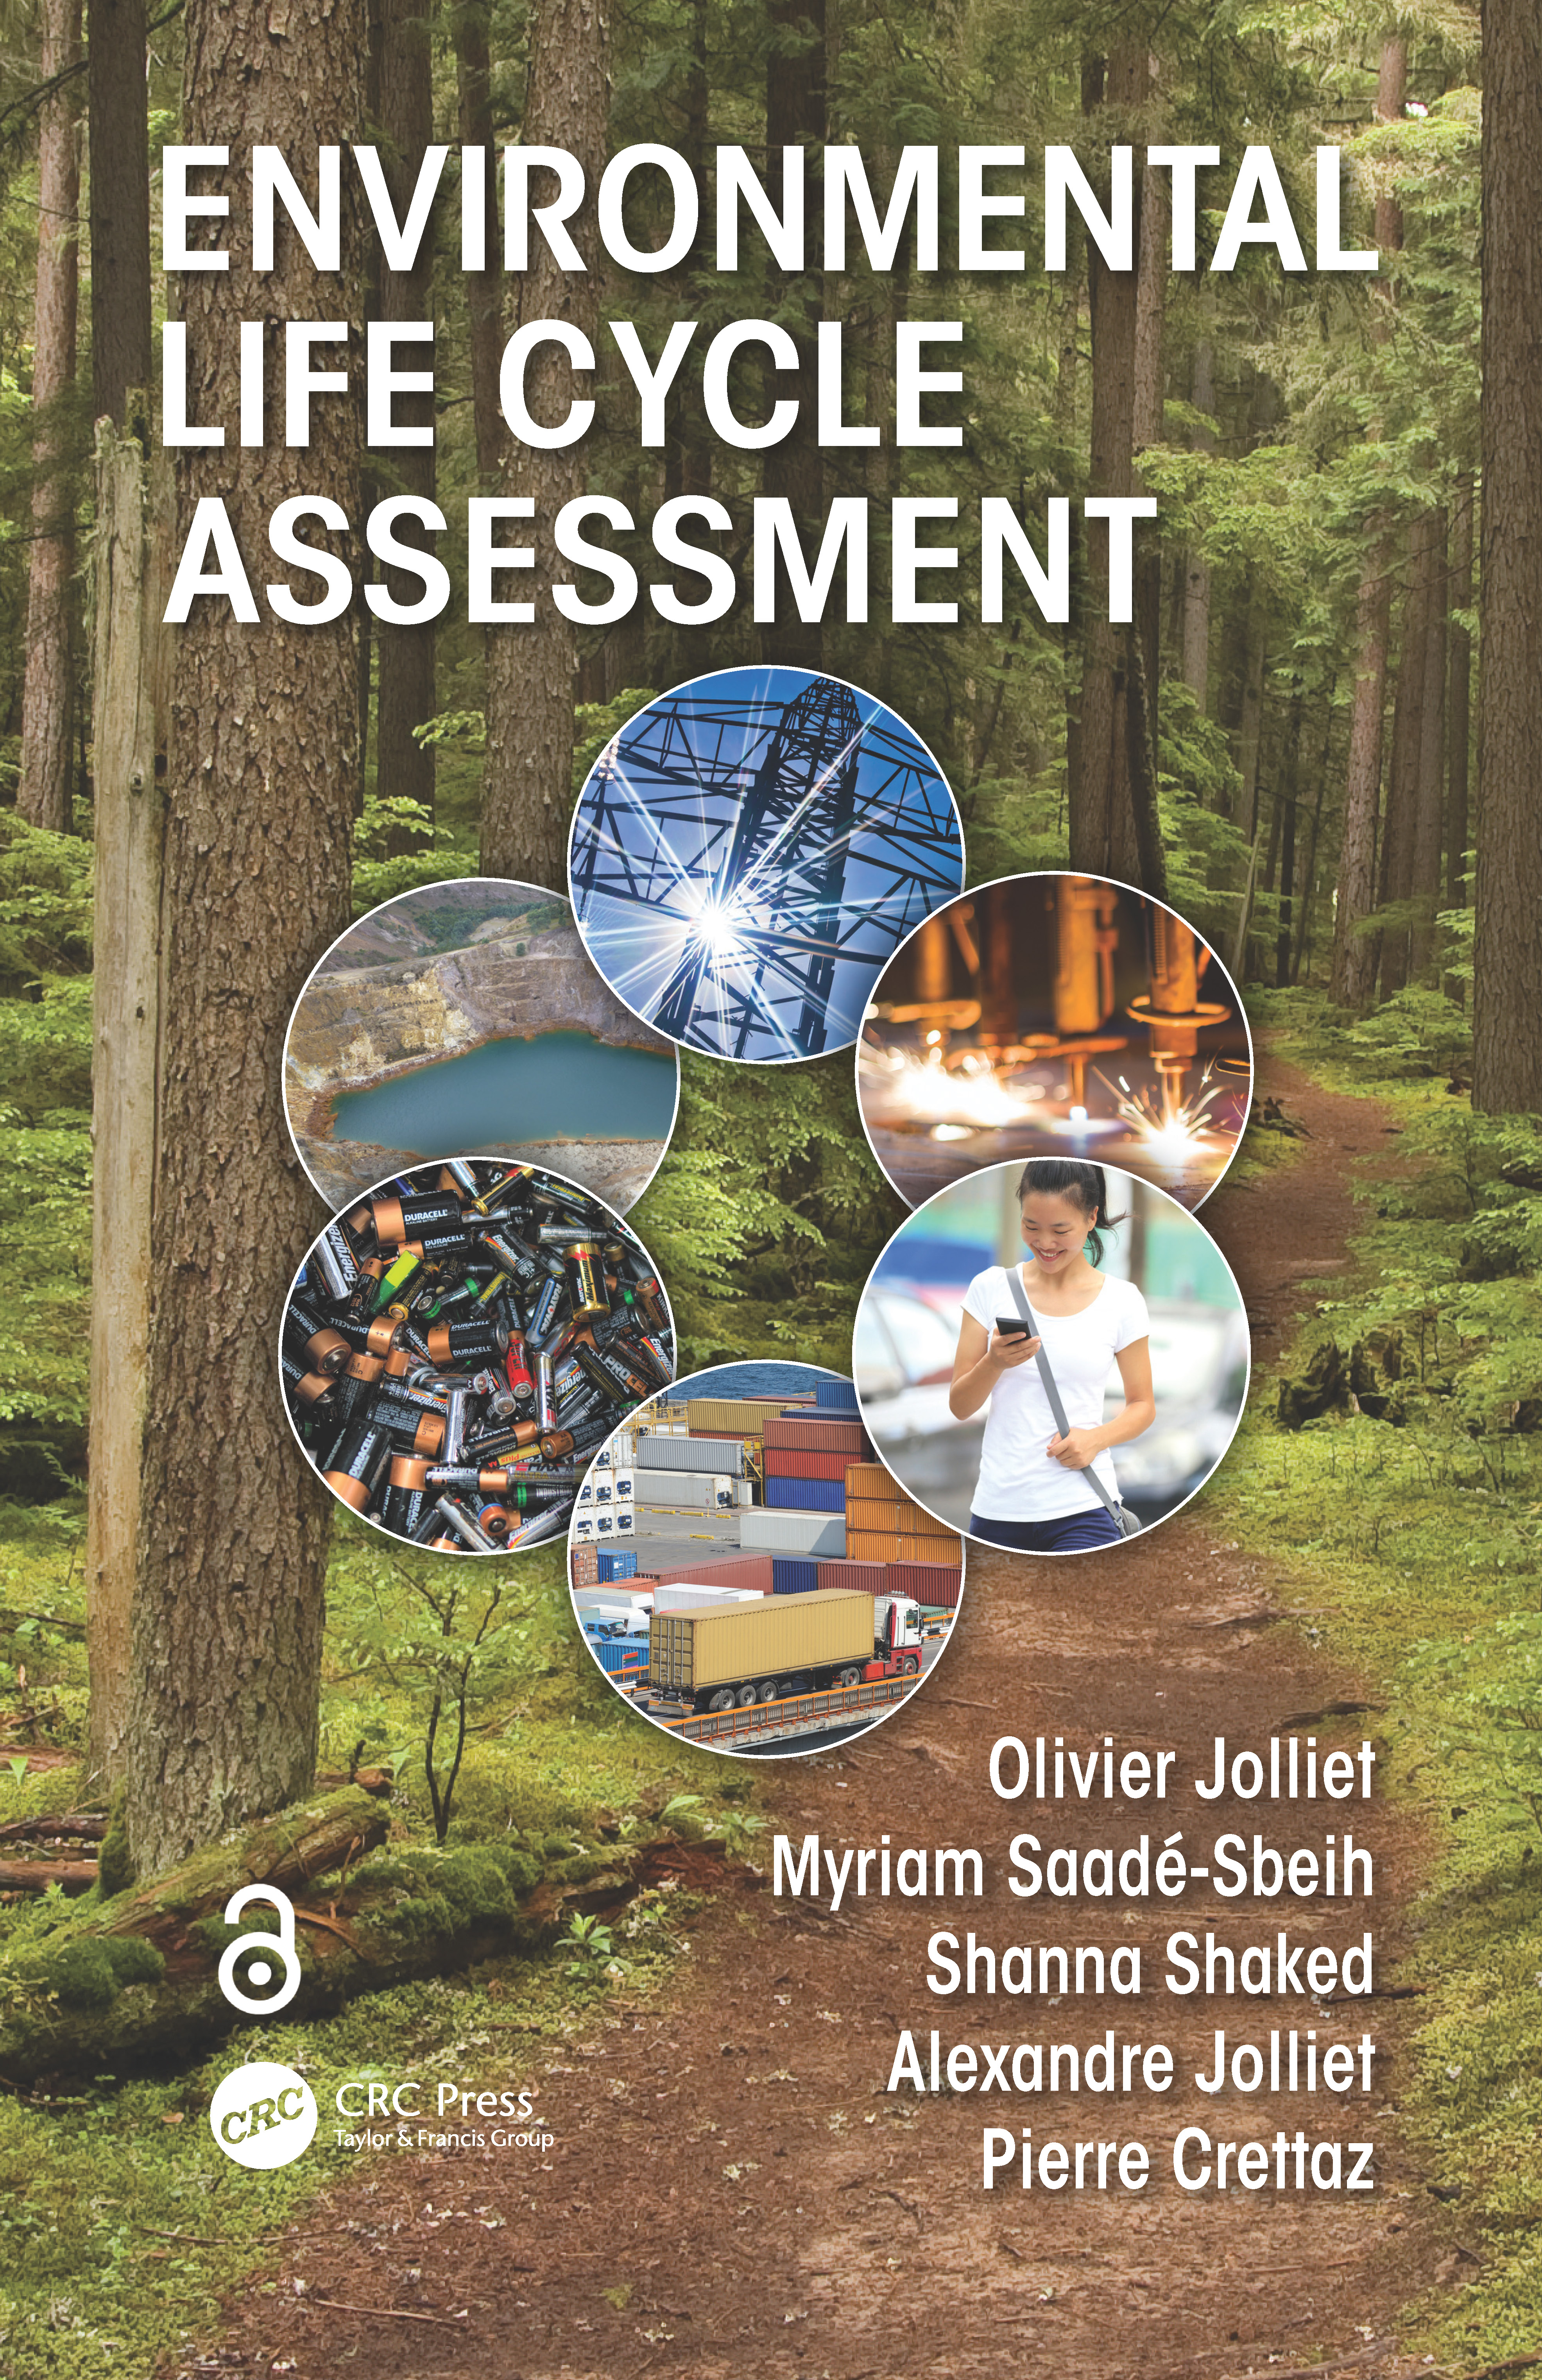 General Principles of Life Cycle Assessment